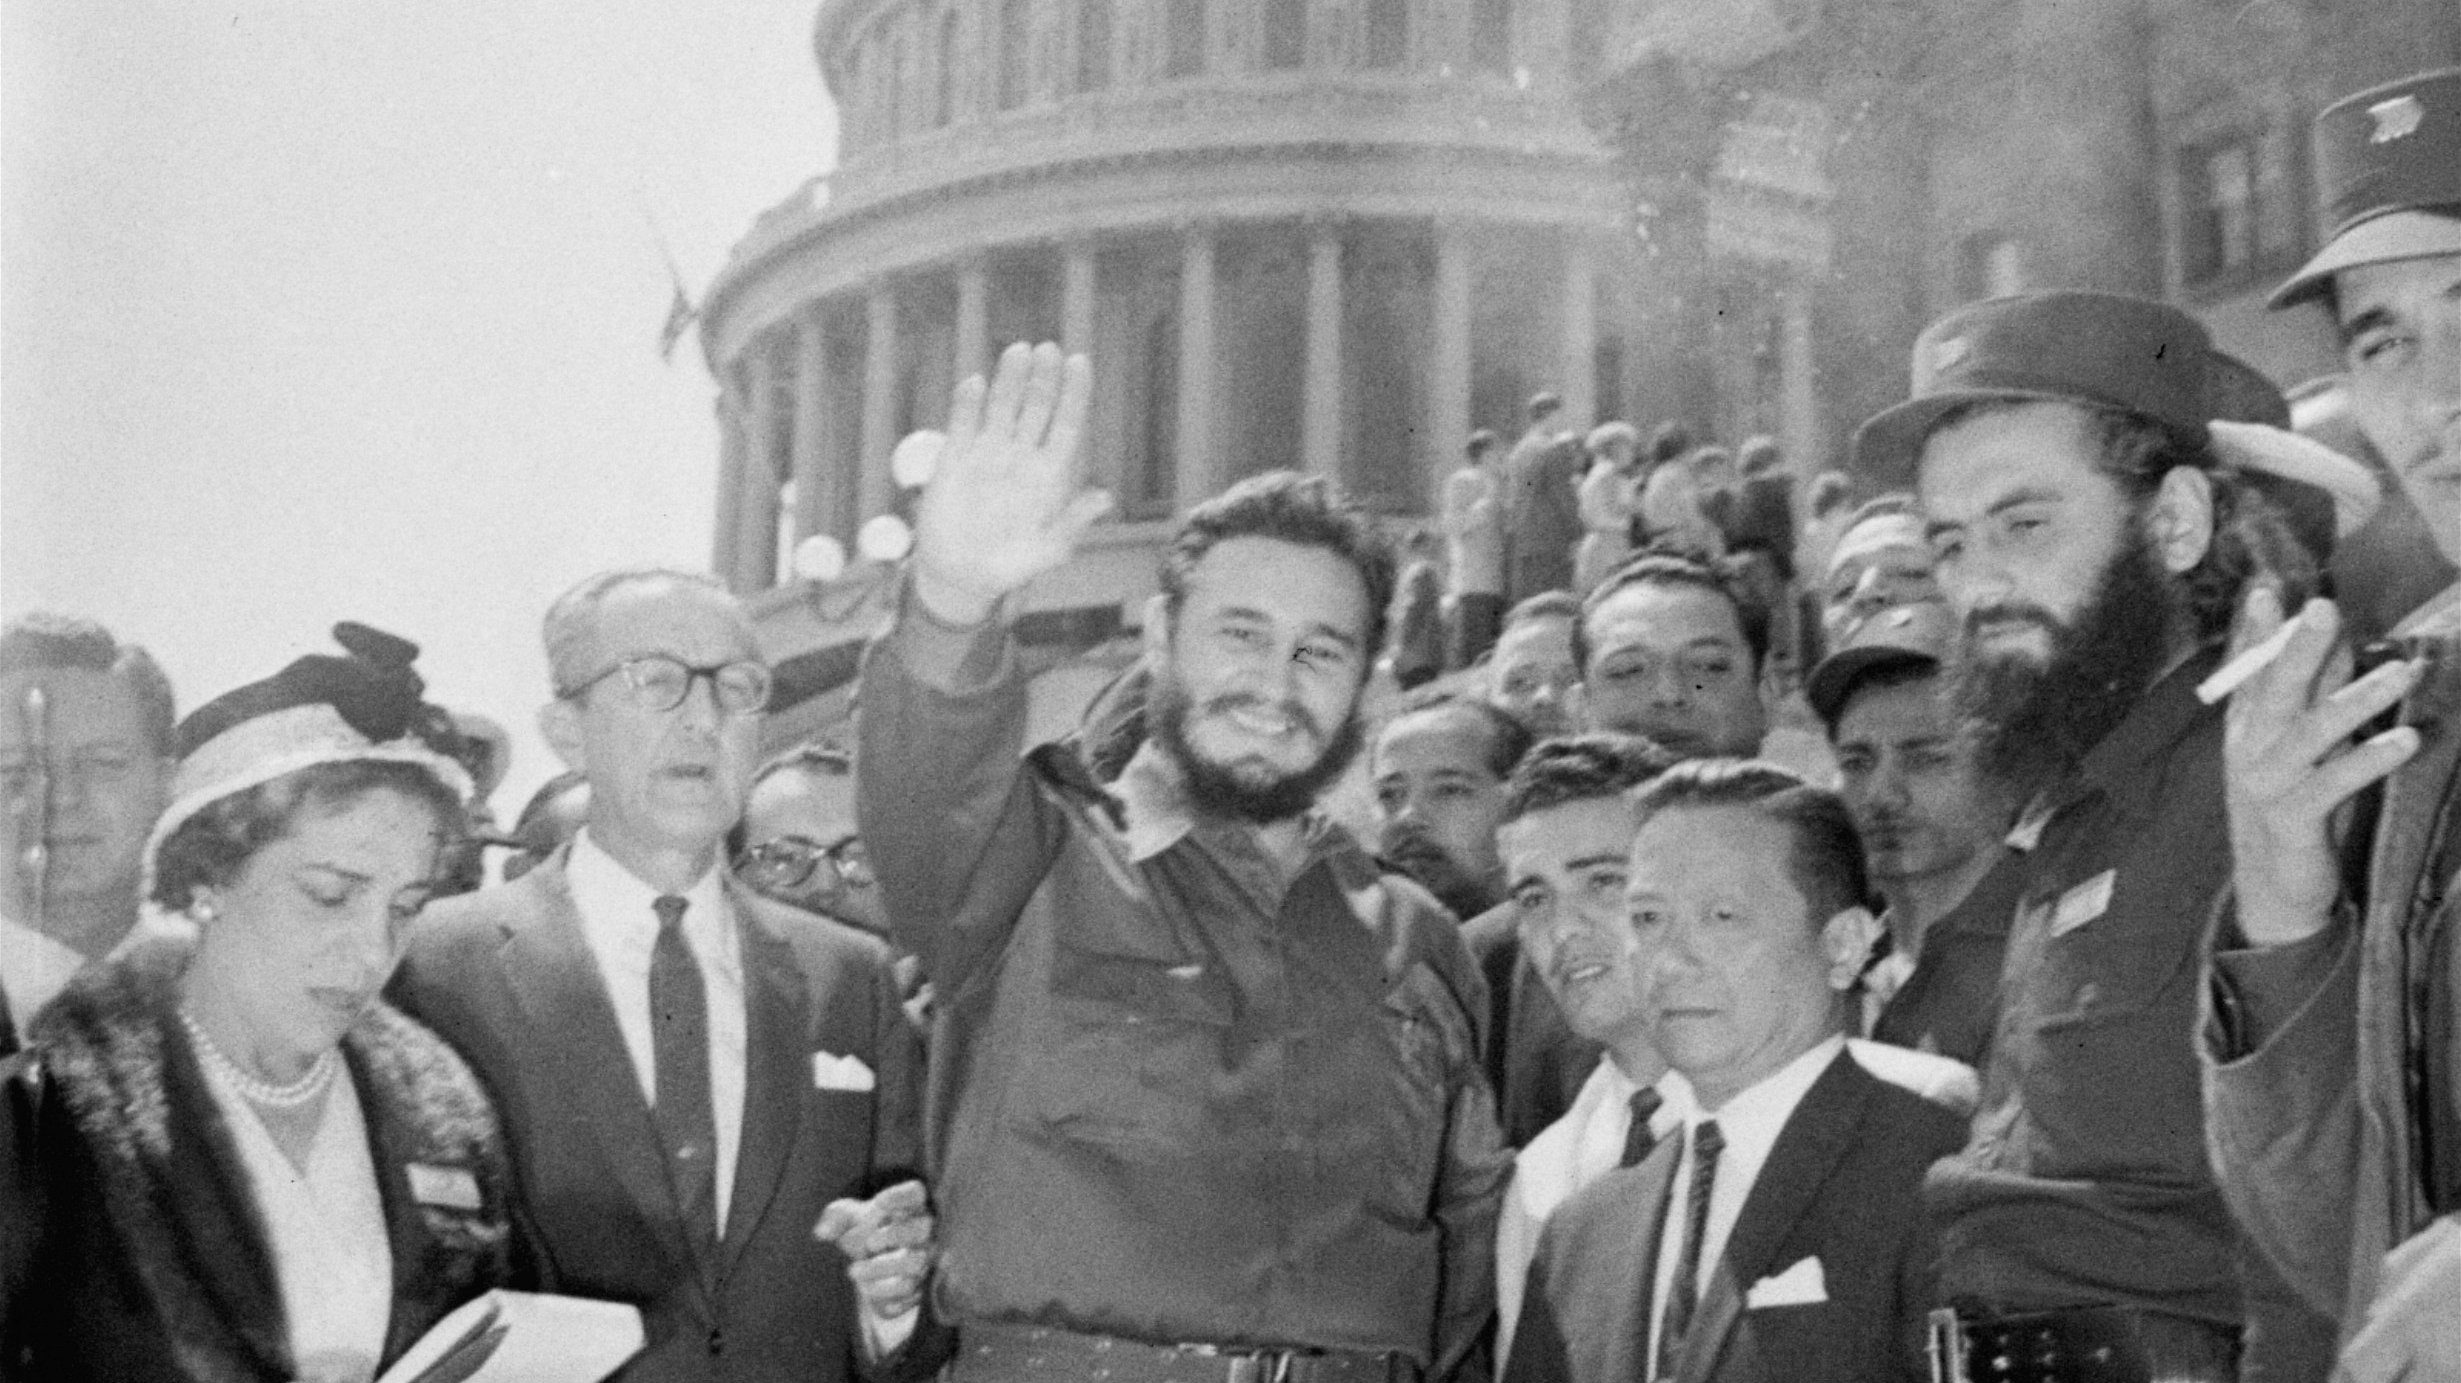 Fidel Castro, fresh from a visit to the Senate Foreign Relations Committee, poses in front of the Capitol today. The 32-year-old Cuban Prime Minister paid an unheralded visit to the Capitol April 17, 1959 and chatted with members of the committee.